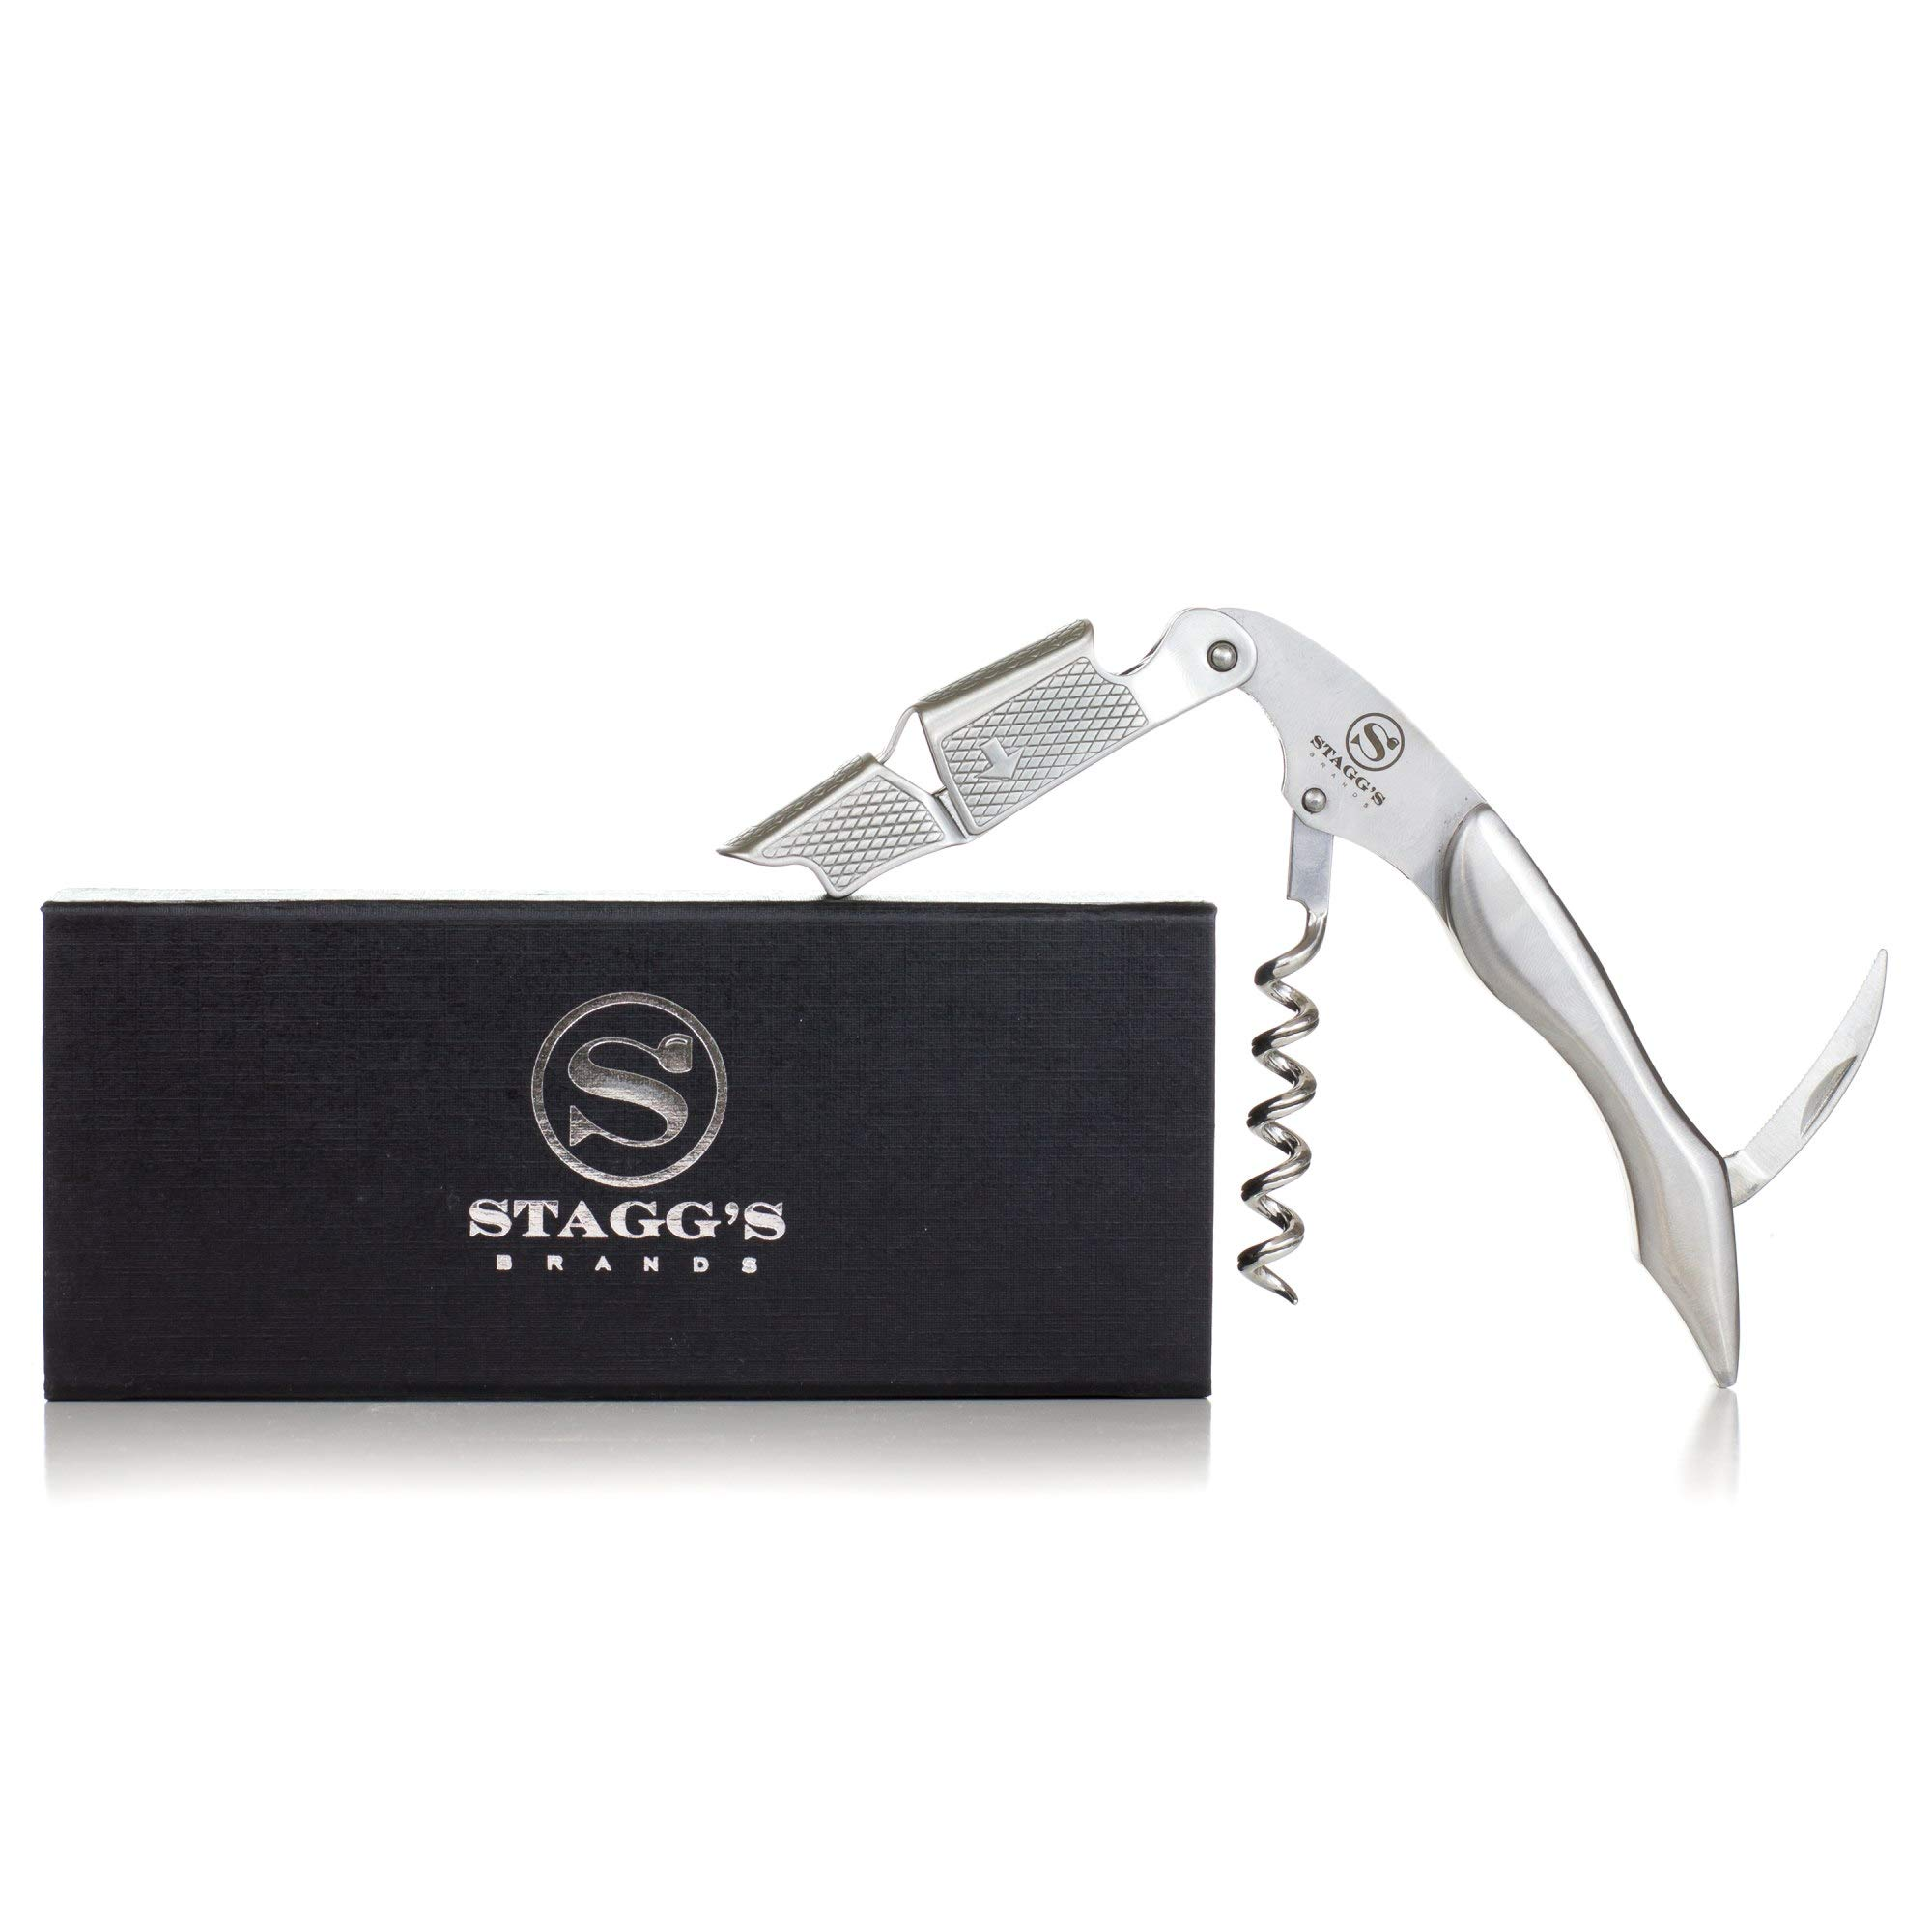 Premium Double Hinged Waiter's Wine Corkscrew by Stagg's Brands- Solid Stainless Steel Wine Key- Perfect Wine Opener for Waiters, Sommeliers and Bartenders (Stainless Steel)